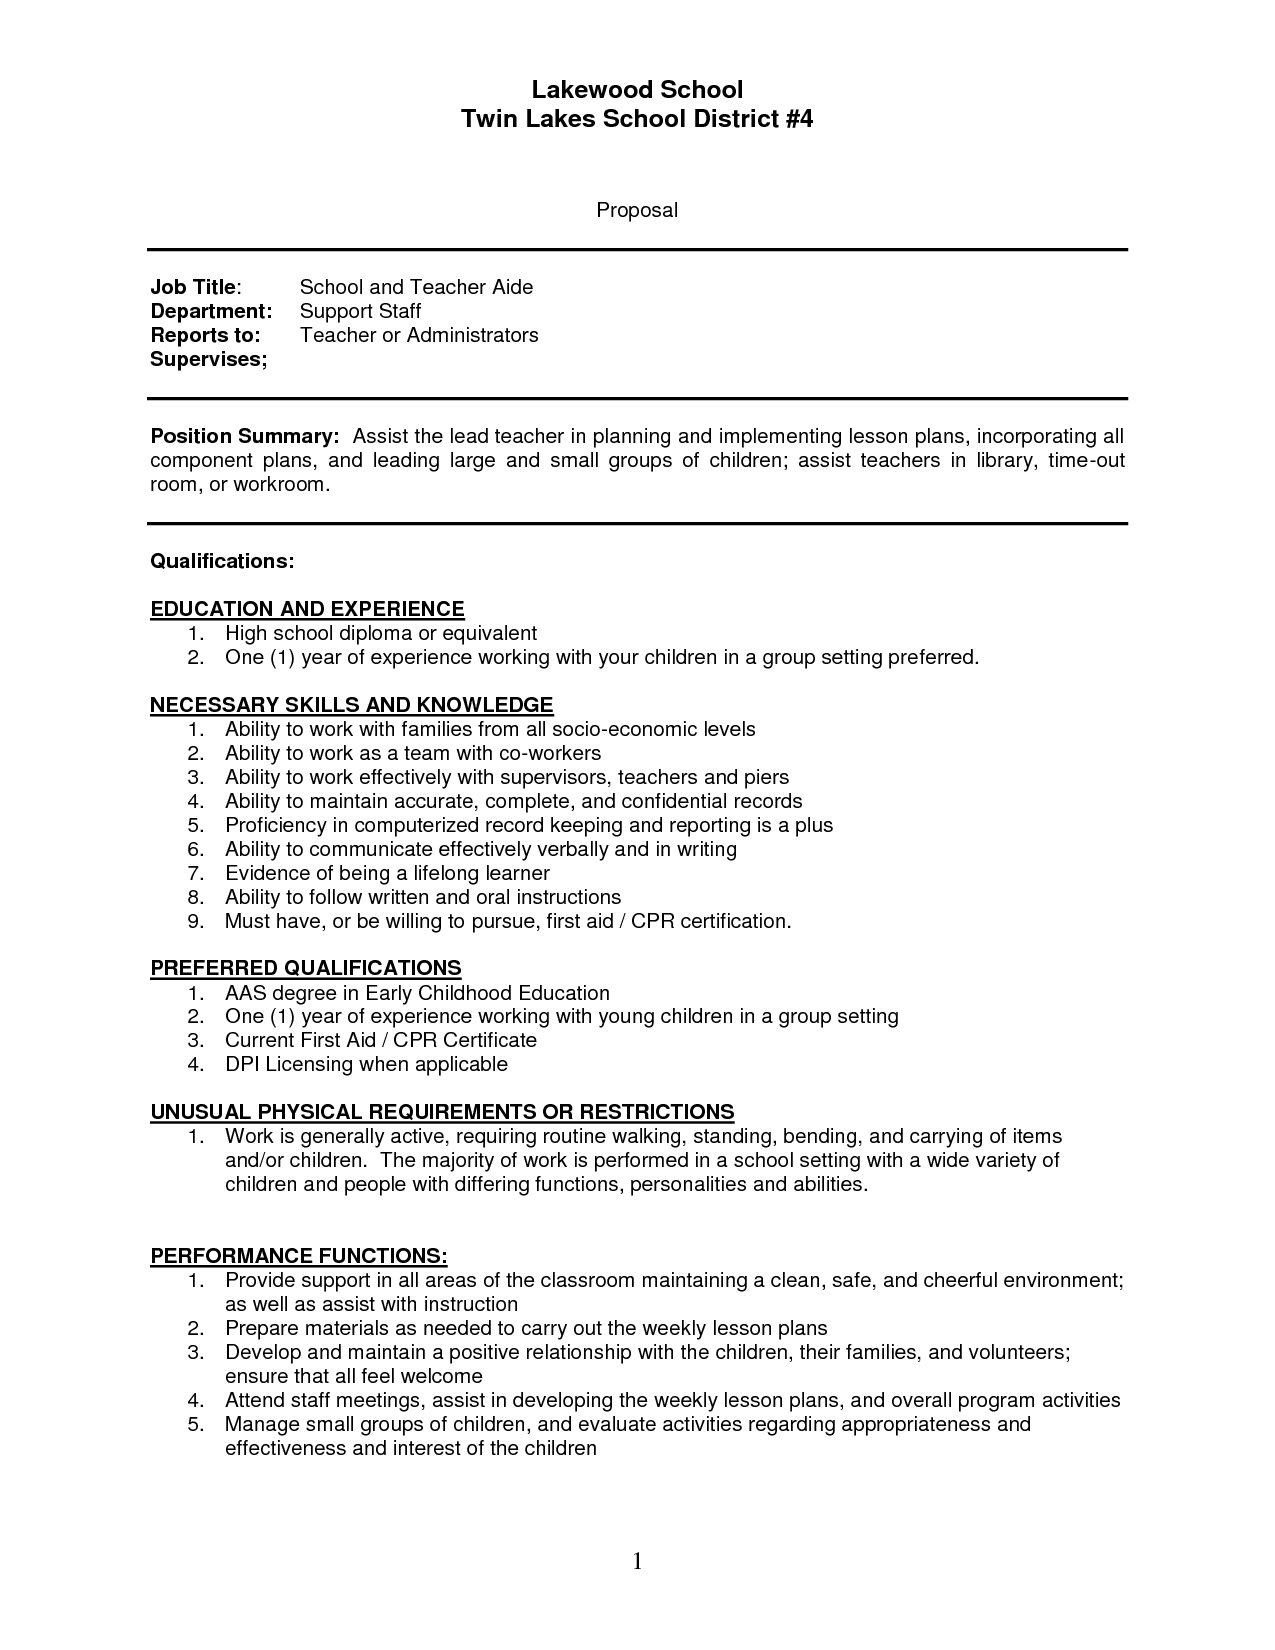 resume Library Aide Resume teacher assistant sample resume of teachers aides aide examples page librarian cover letter the best free home design idea inspiration